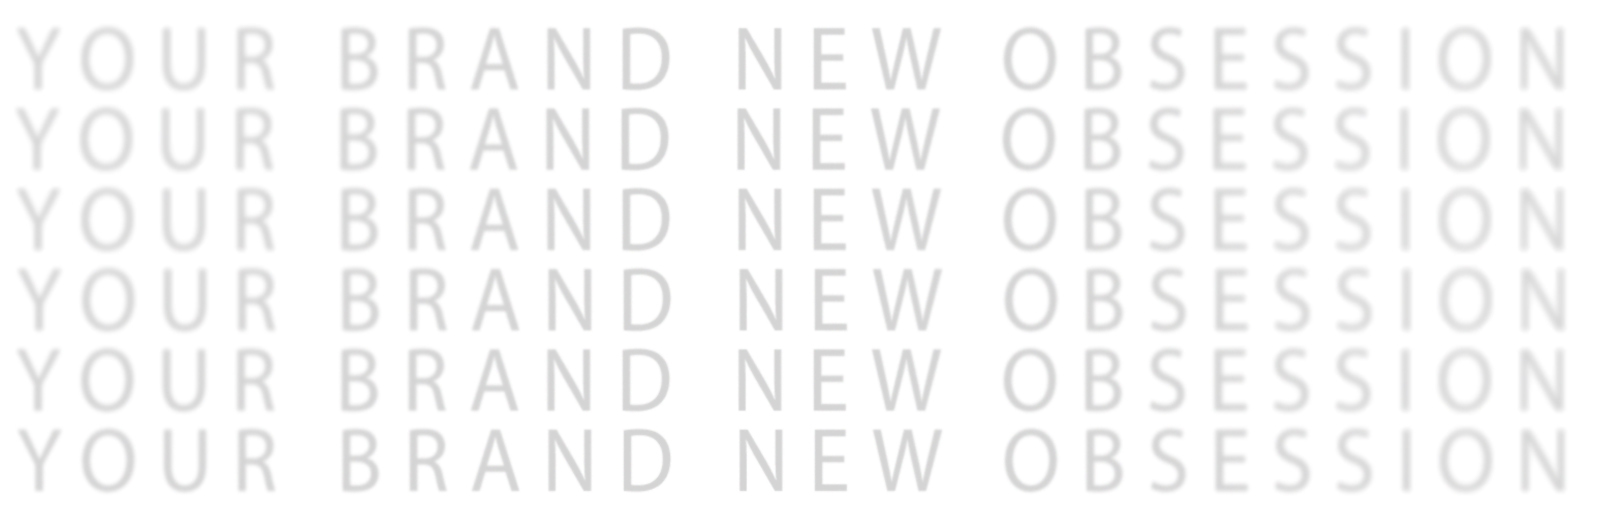 Your Brand New Obsession Store